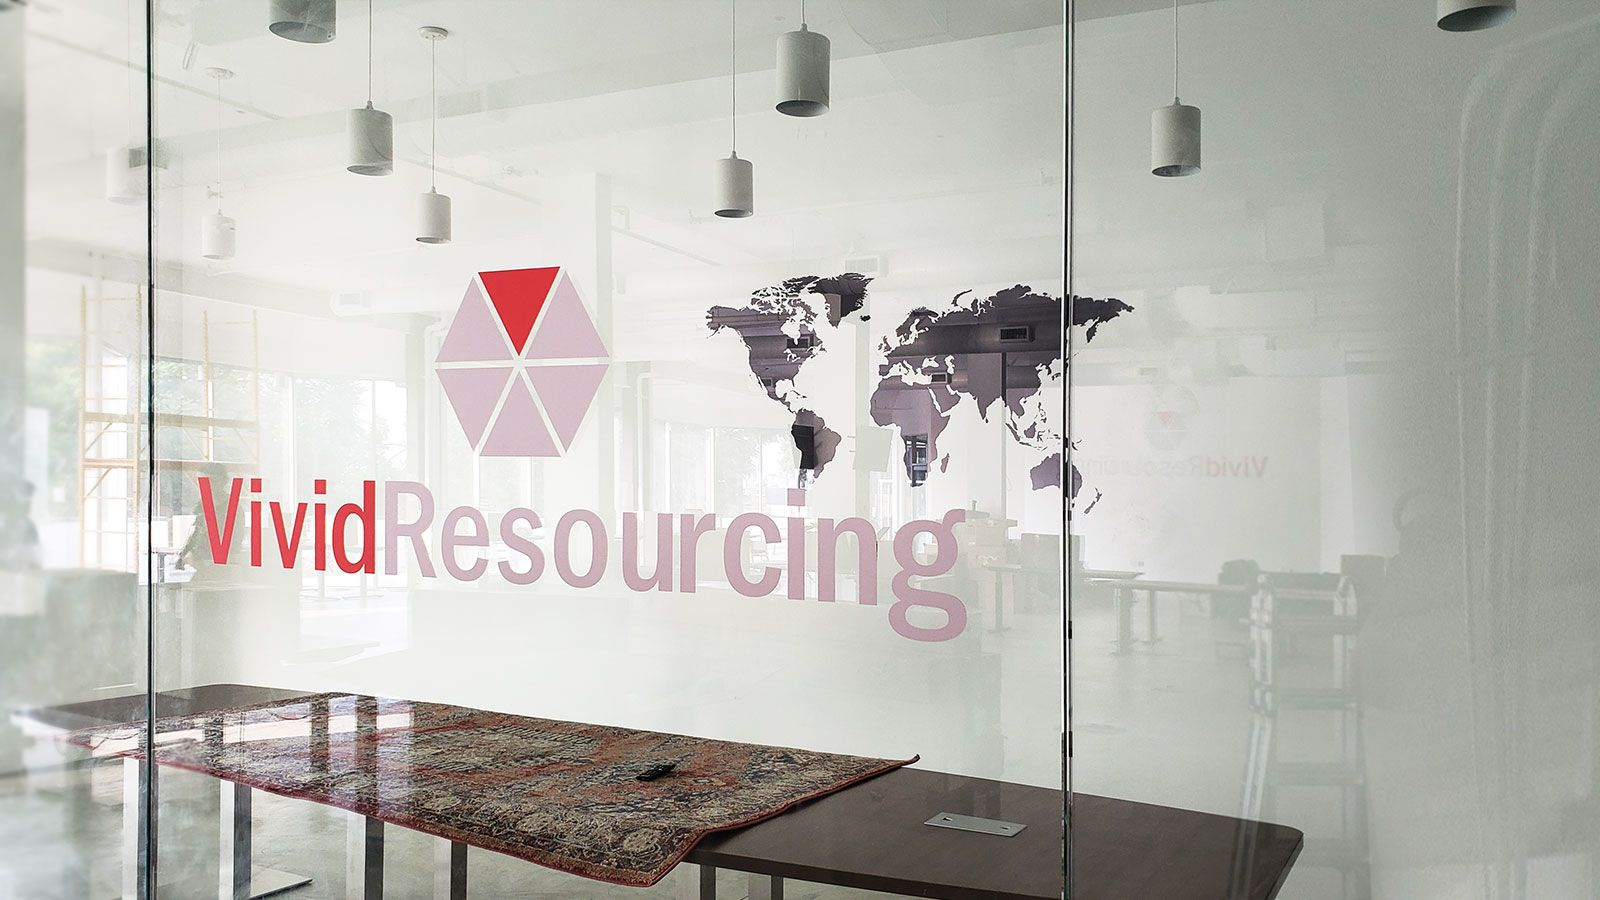 Vivid Resourcing window decal